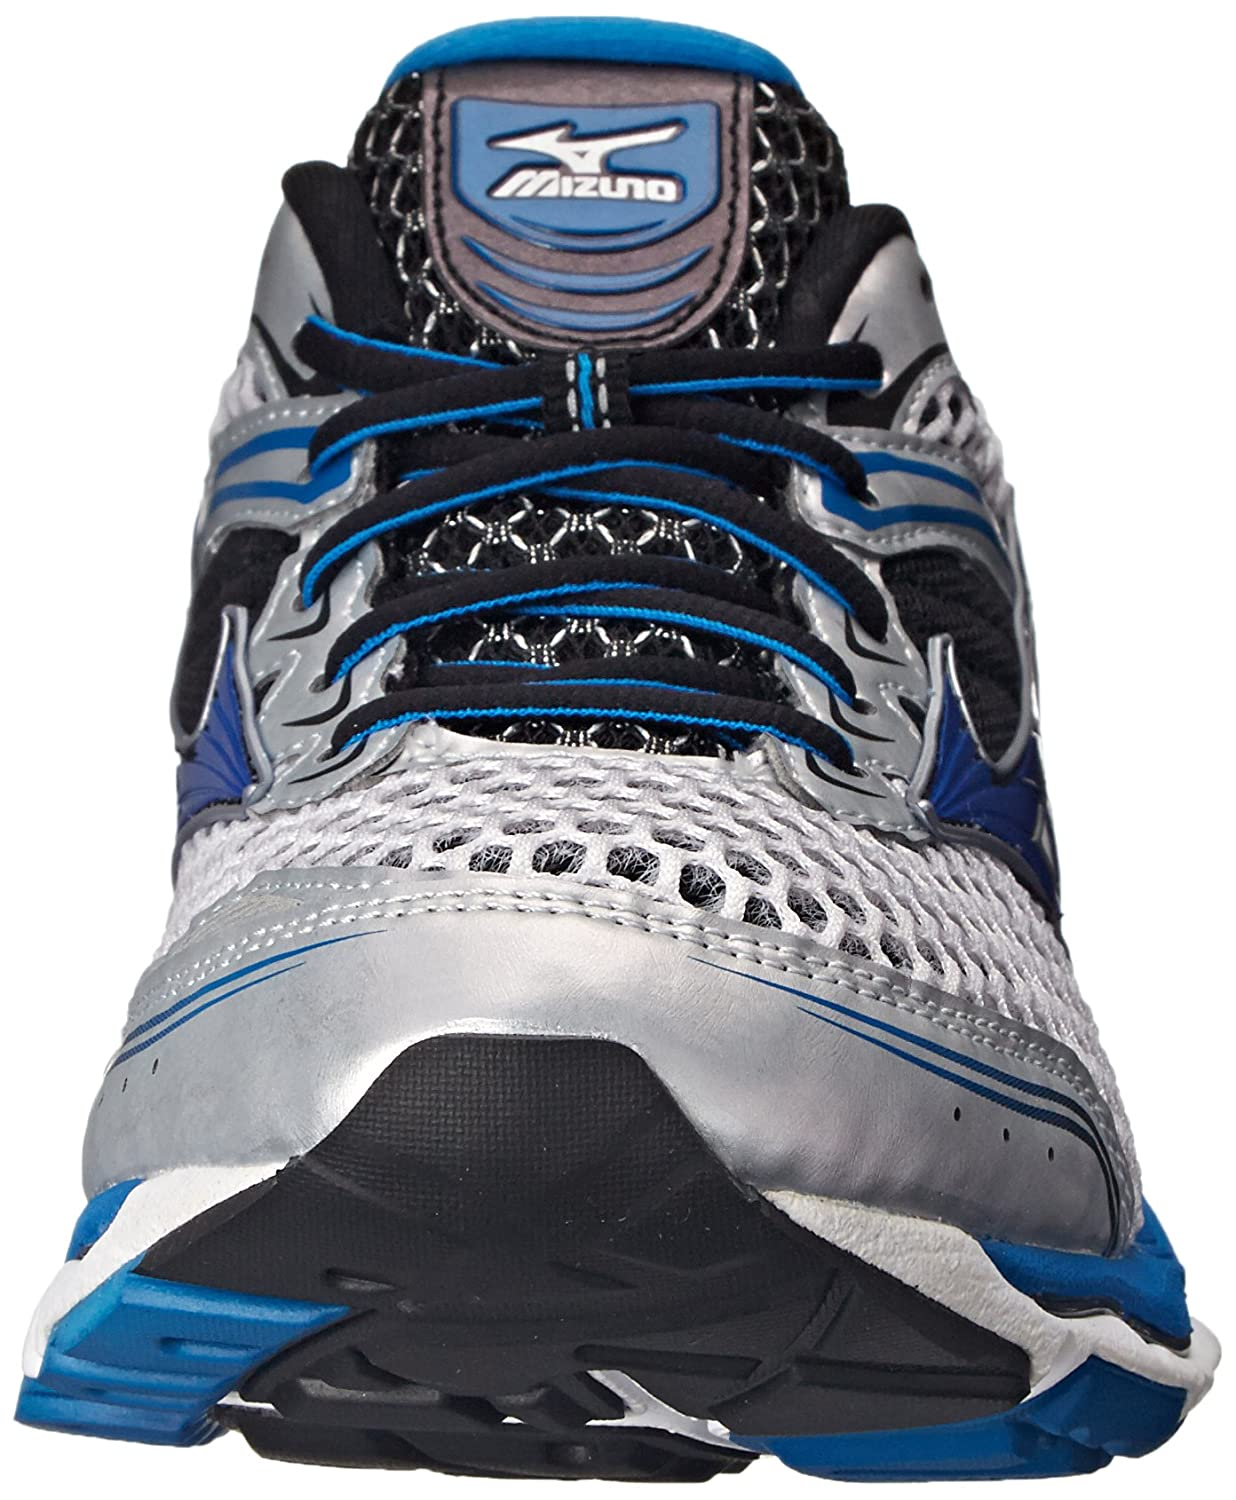 Mizuno Zapatos Corrientes Del Mens Amazon teuUd